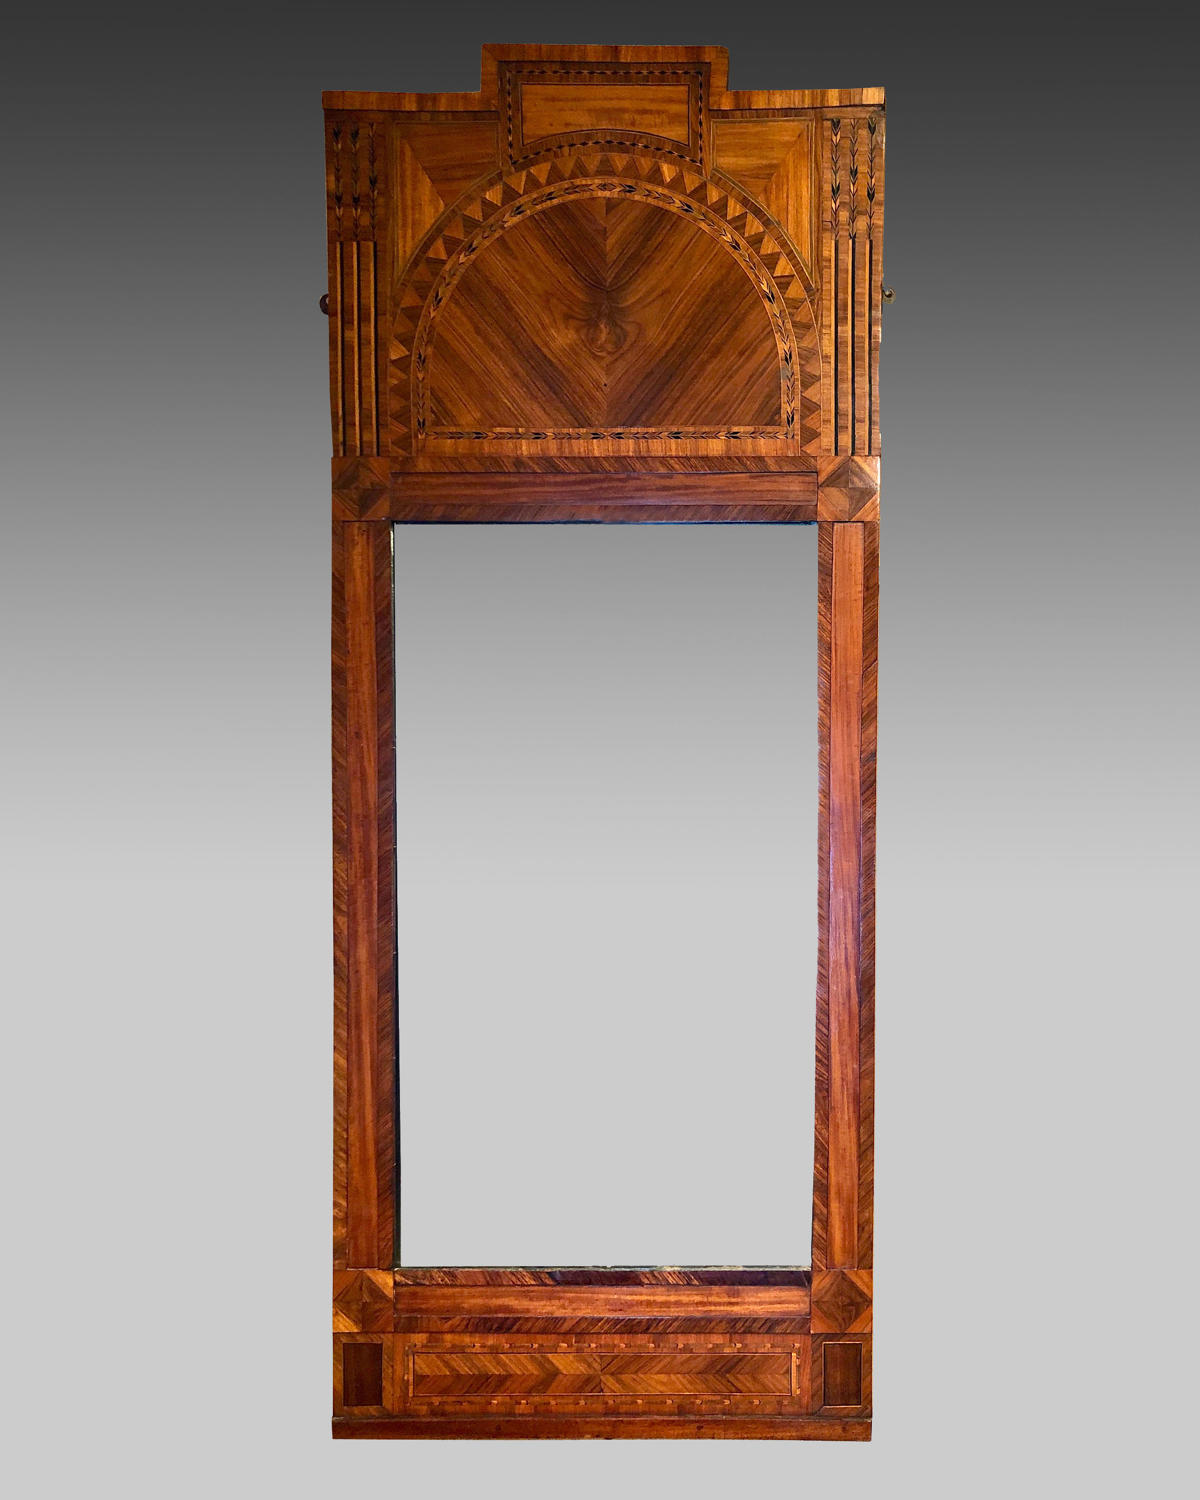 Scandinavian, 19th century kingwood pier glass